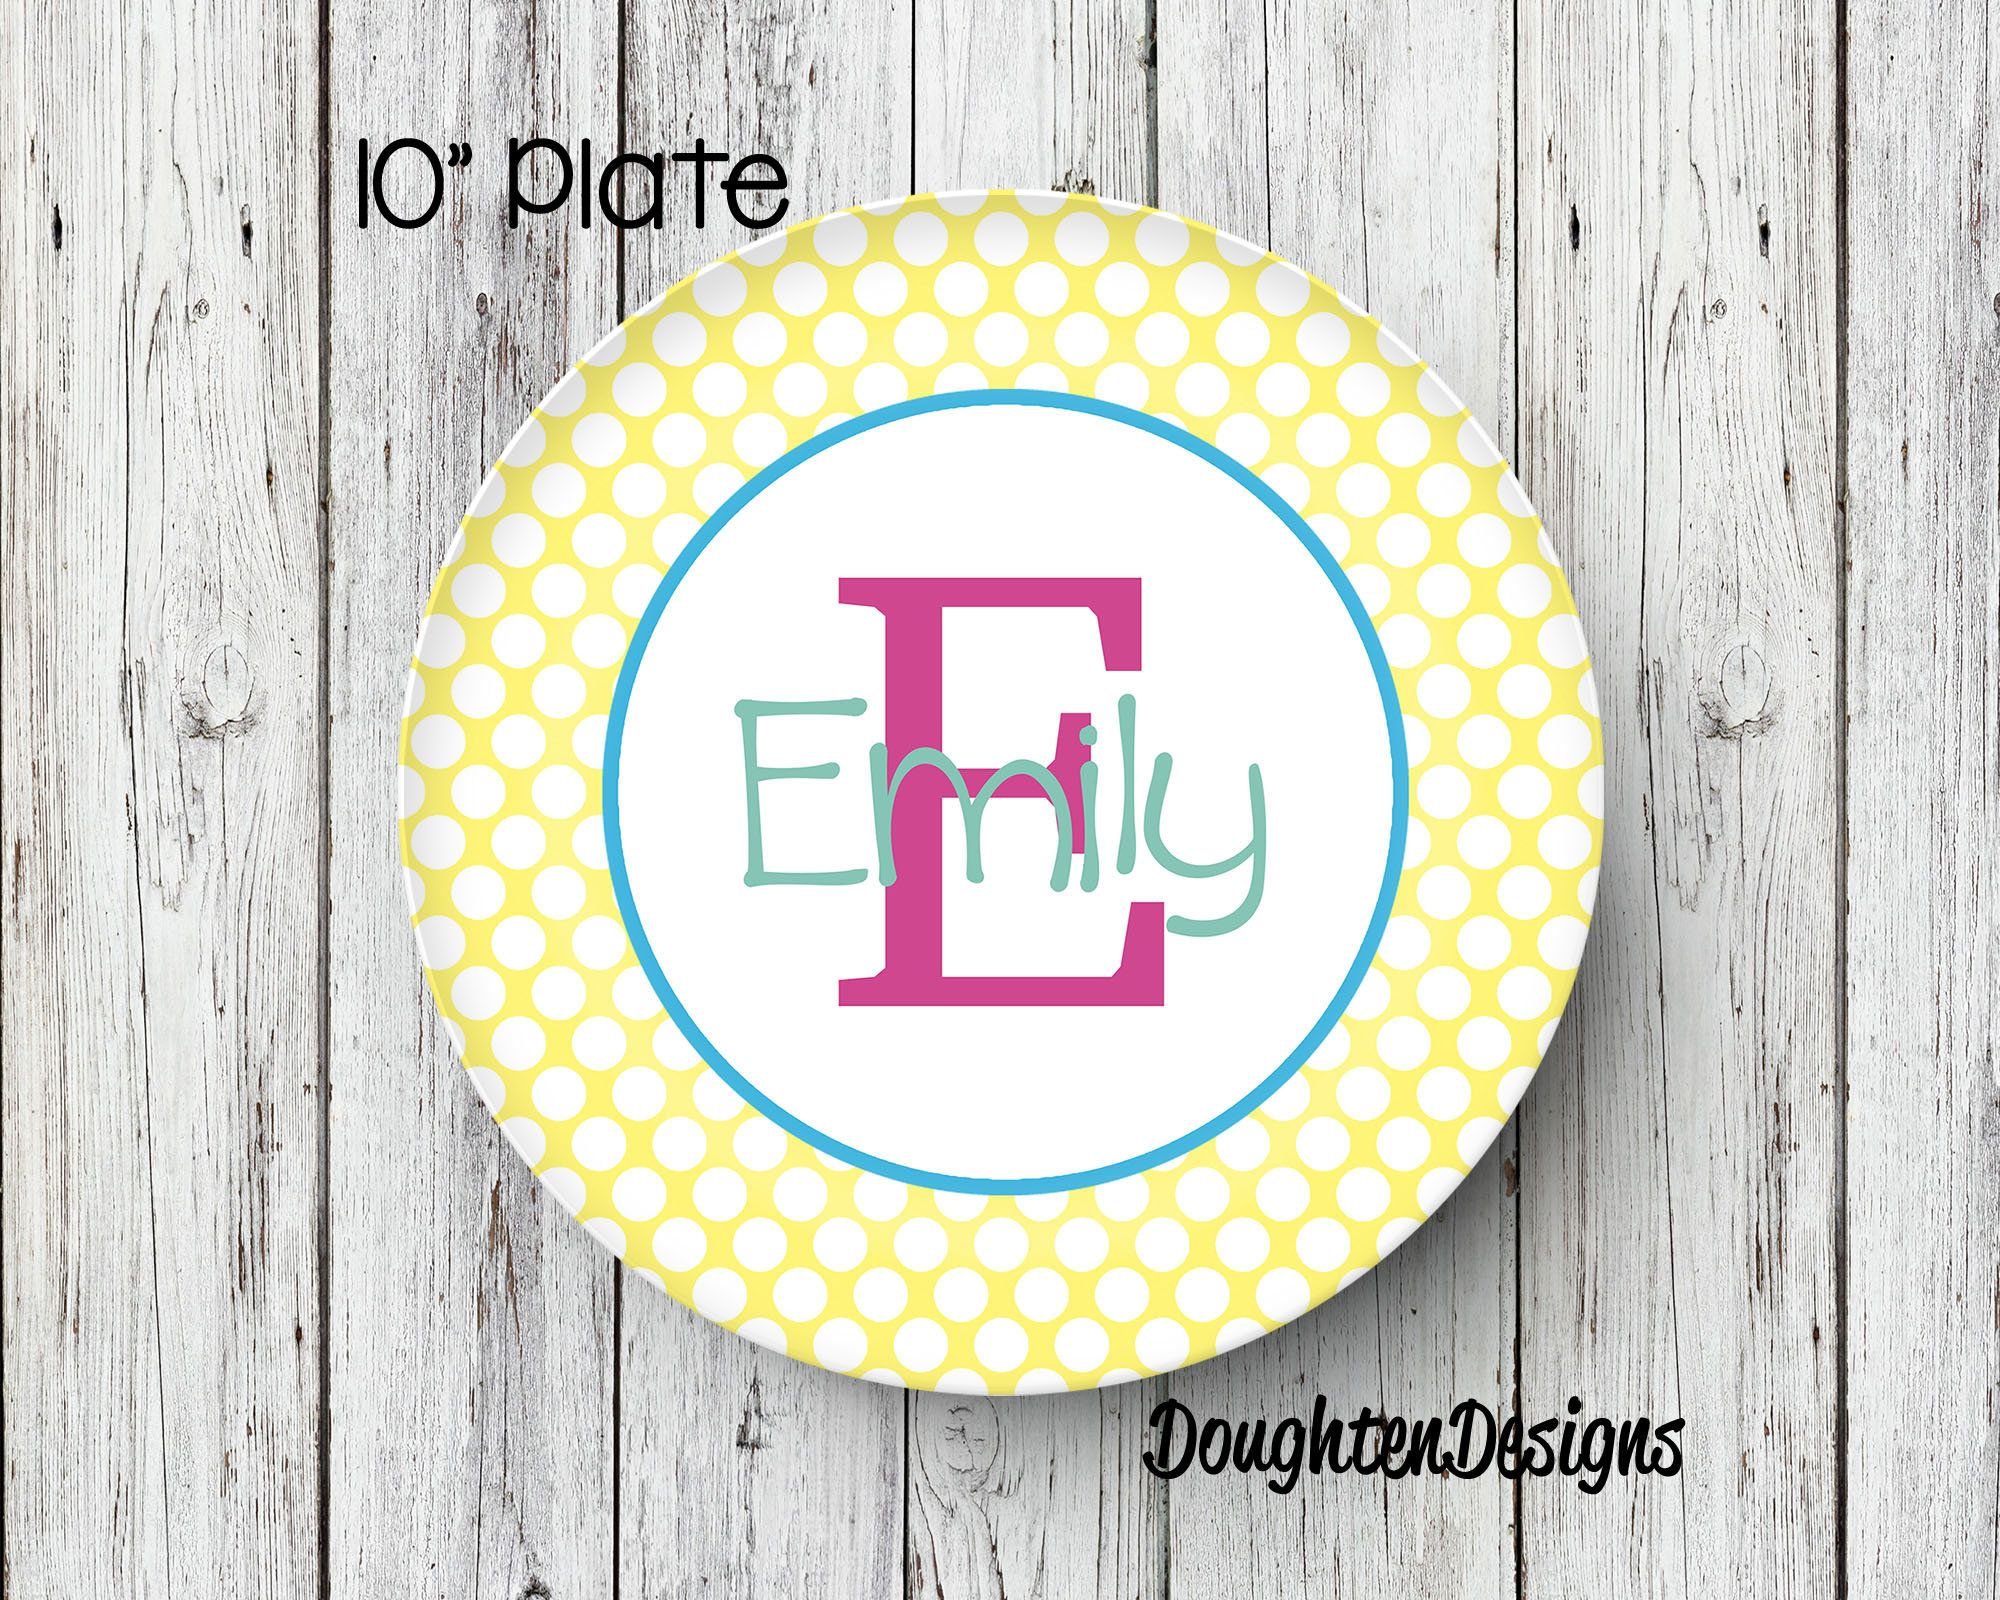 Personalized Name Plate Birthday Plate Personalized Melamine Plate Kids Dinner Plate Toddler dinnerware Birthday plate melamine plate  sc 1 st  Pinterest & Personalized Name Plate Birthday Plate Personalized Melamine Plate ...